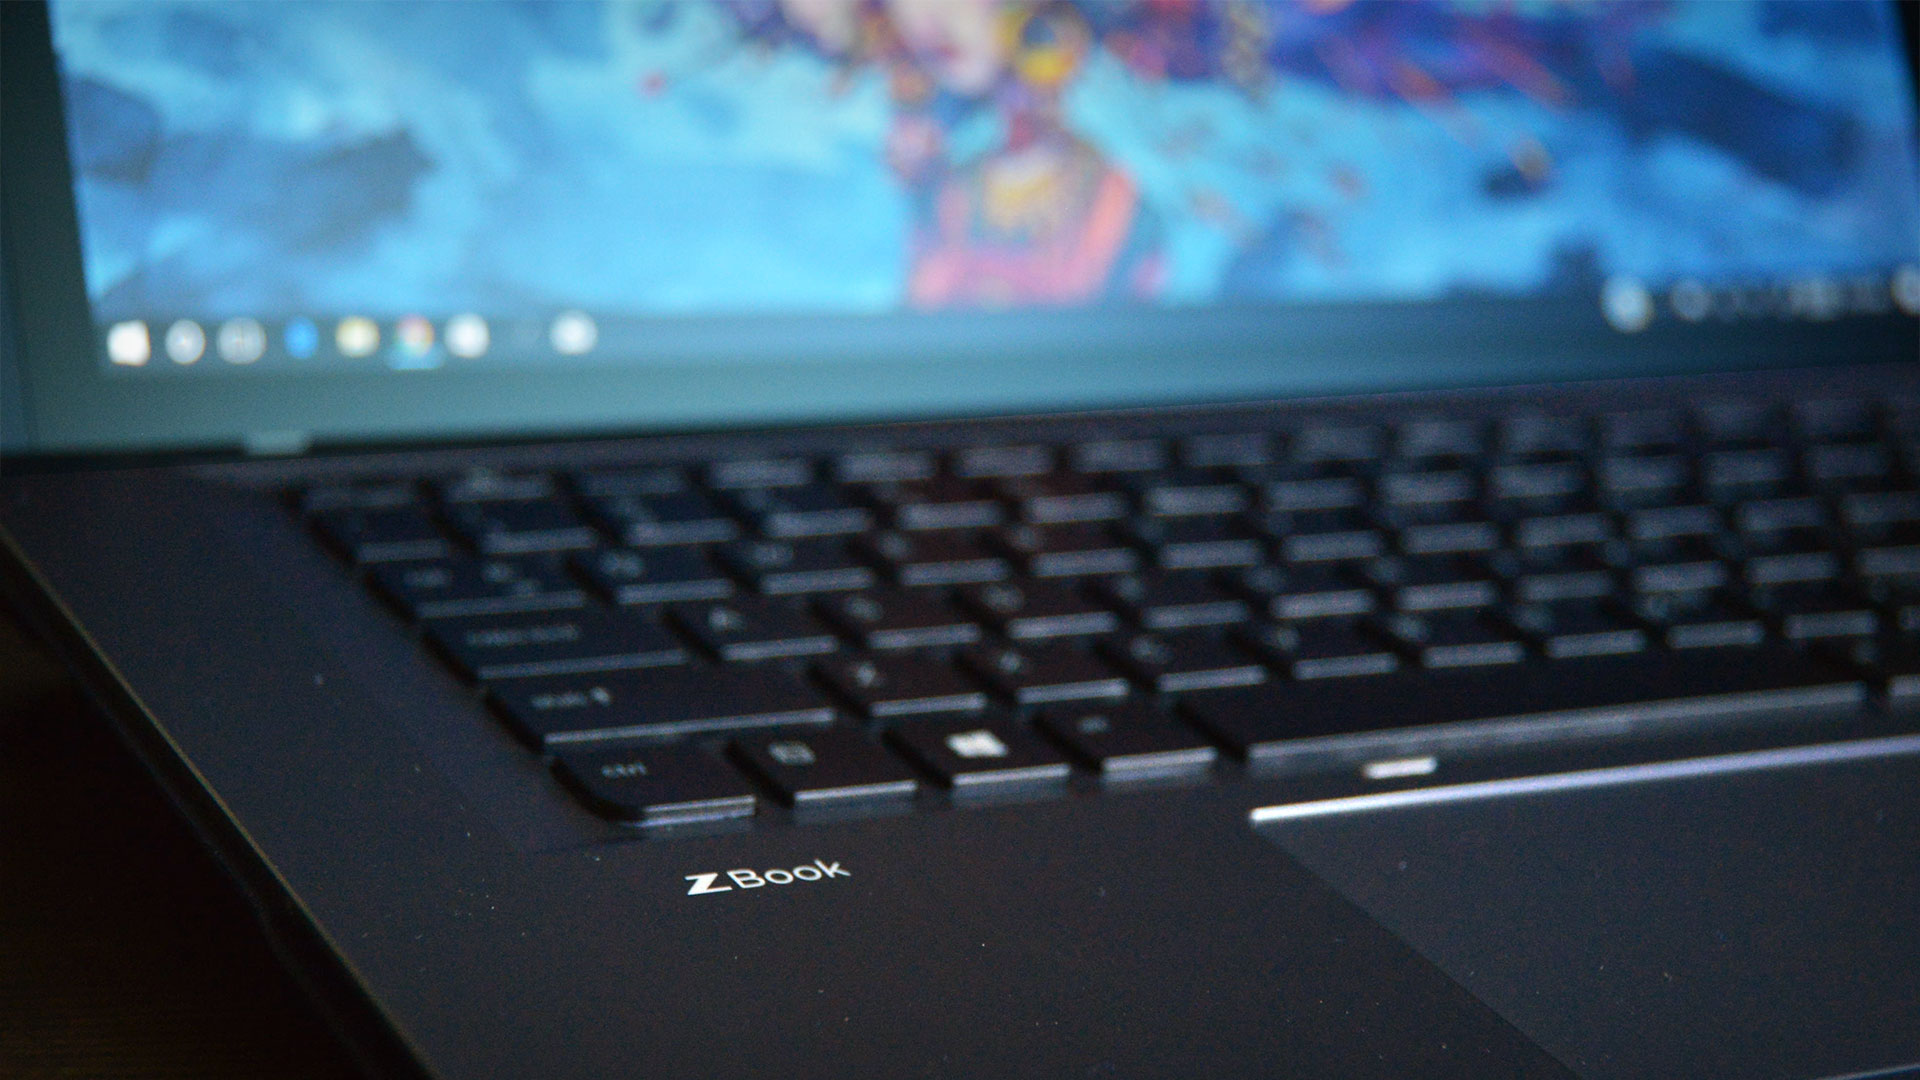 HP ZBook x2 Laptop/Tablet Workstation [Review]